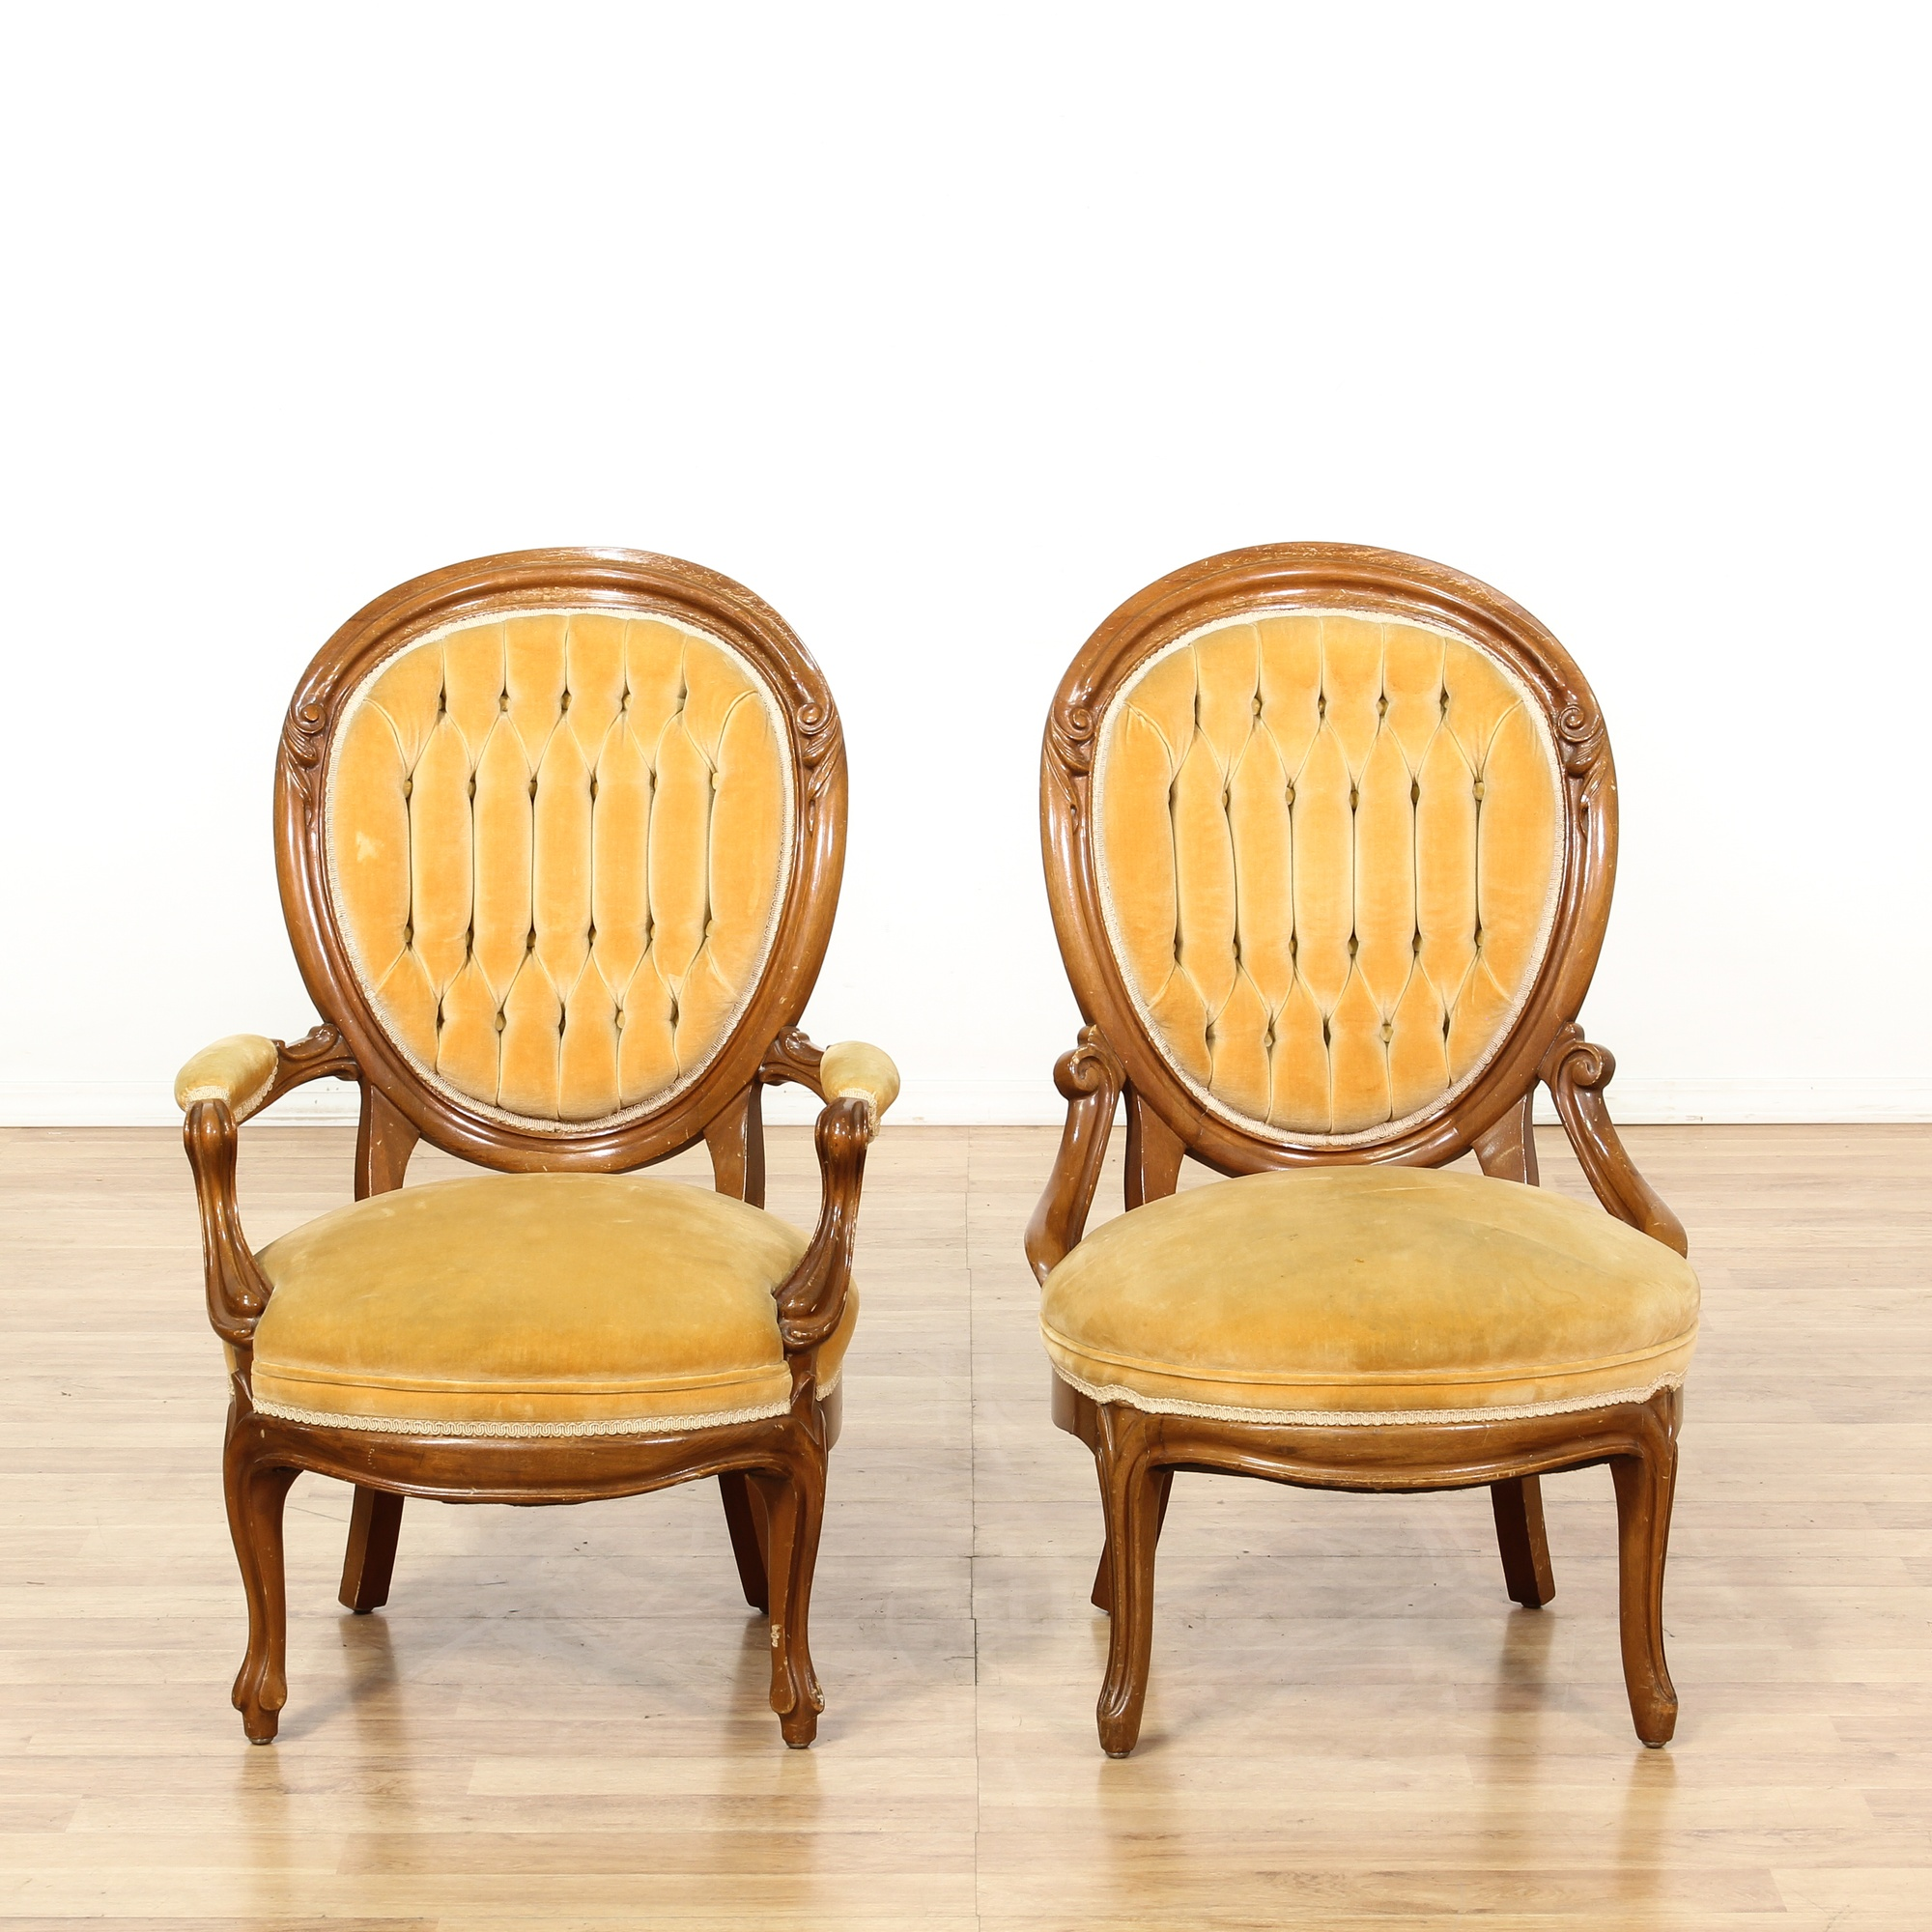 Pair Of Tufted Yellow Victorian Dining Chairs Loveseat